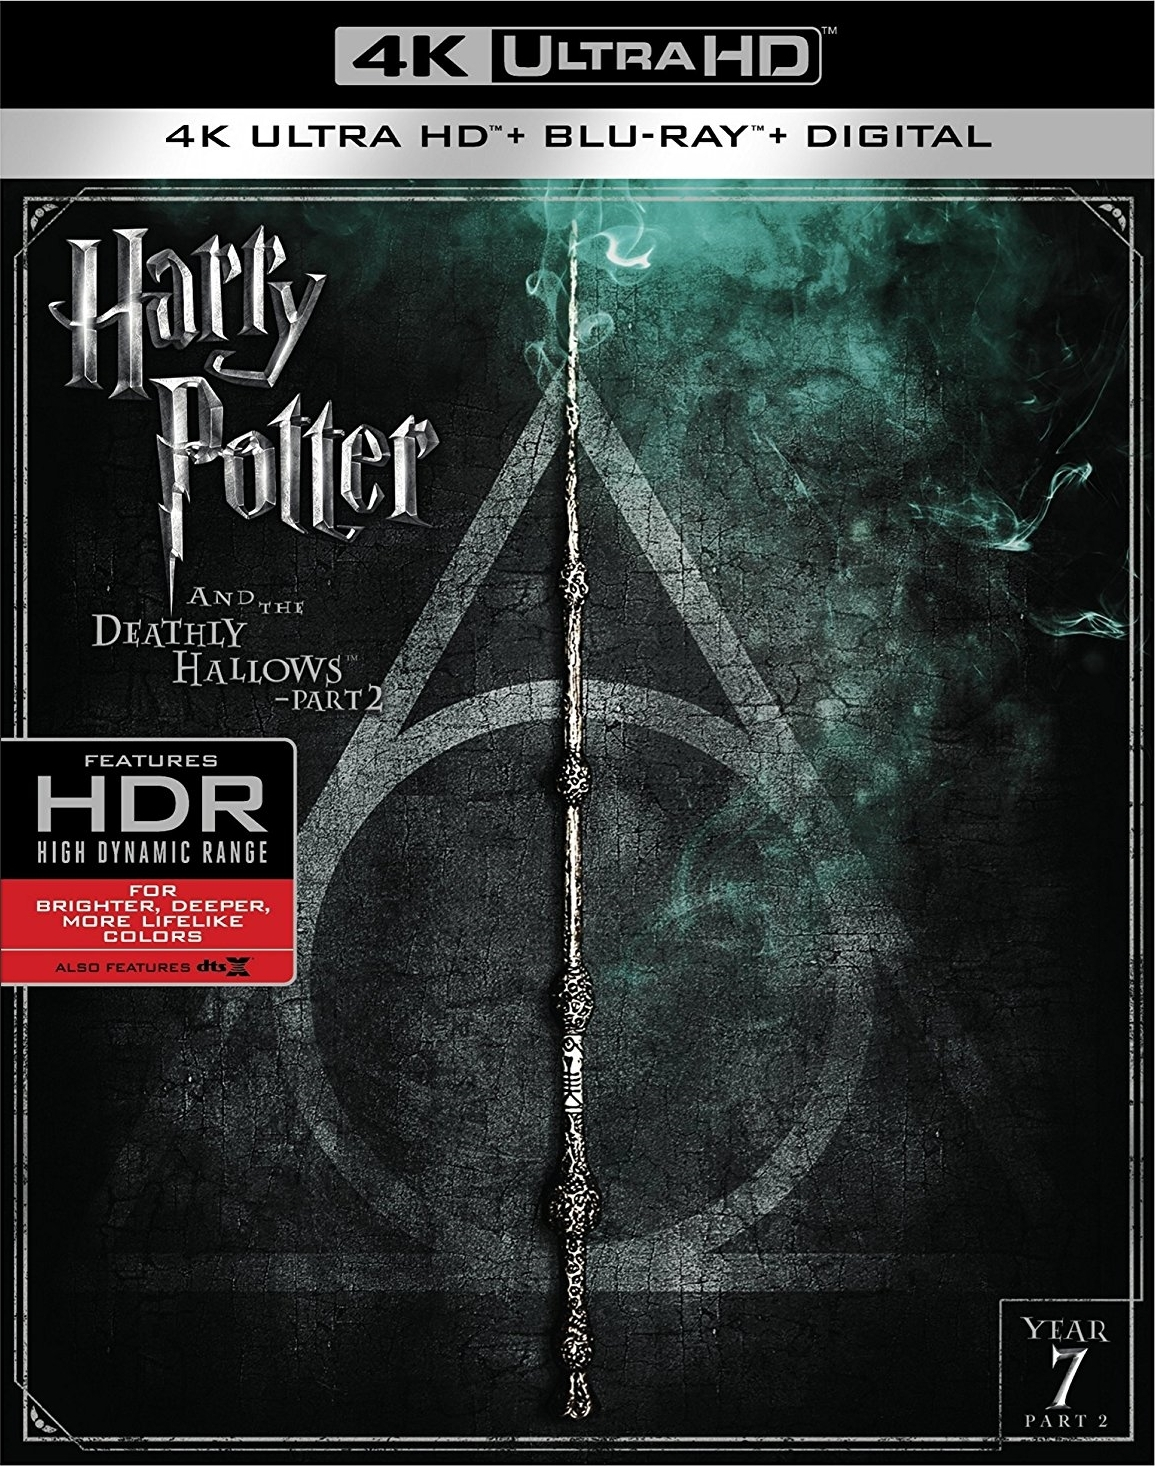 Harry Potter and the Deathly Hallows: Part 2 4K (2011) Ultra HD Blu-ray